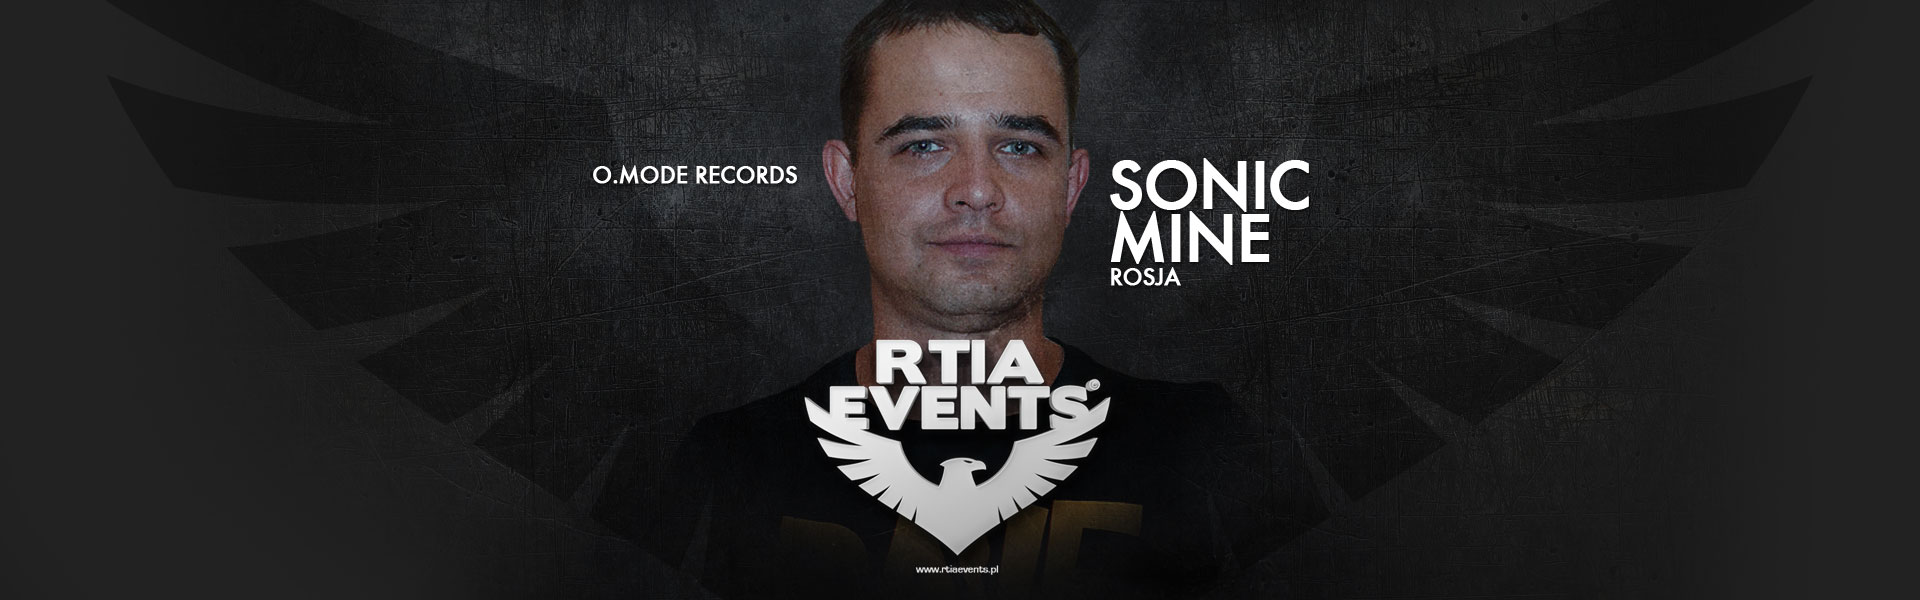 http://www.rtiaevents.pl/wp-content/uploads/2014/03/sonicmine.jpg